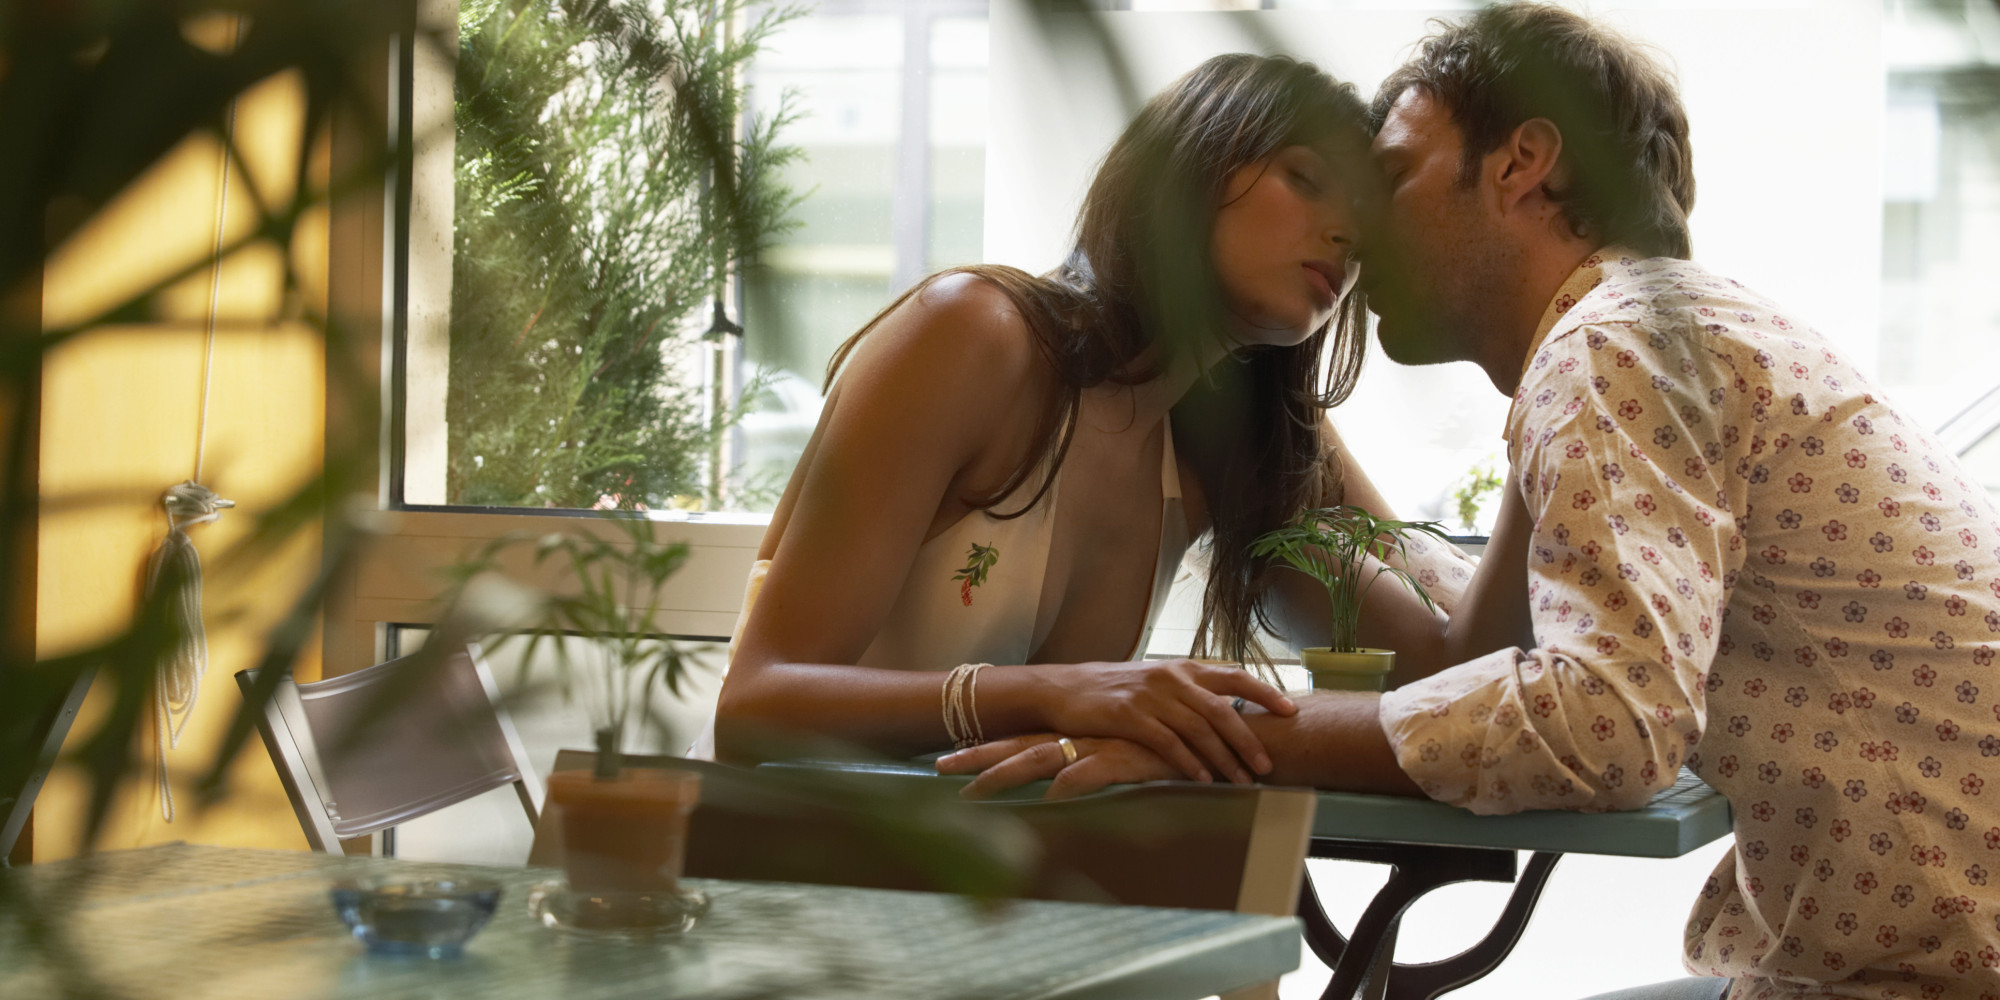 dating meditation Personal meditation's best free dating site 100% free online dating for personal meditation singles at mingle2com our free personal ads are full of single women and men in personal meditation looking for serious relationships, a little online flirtation, or new friends to go out with.